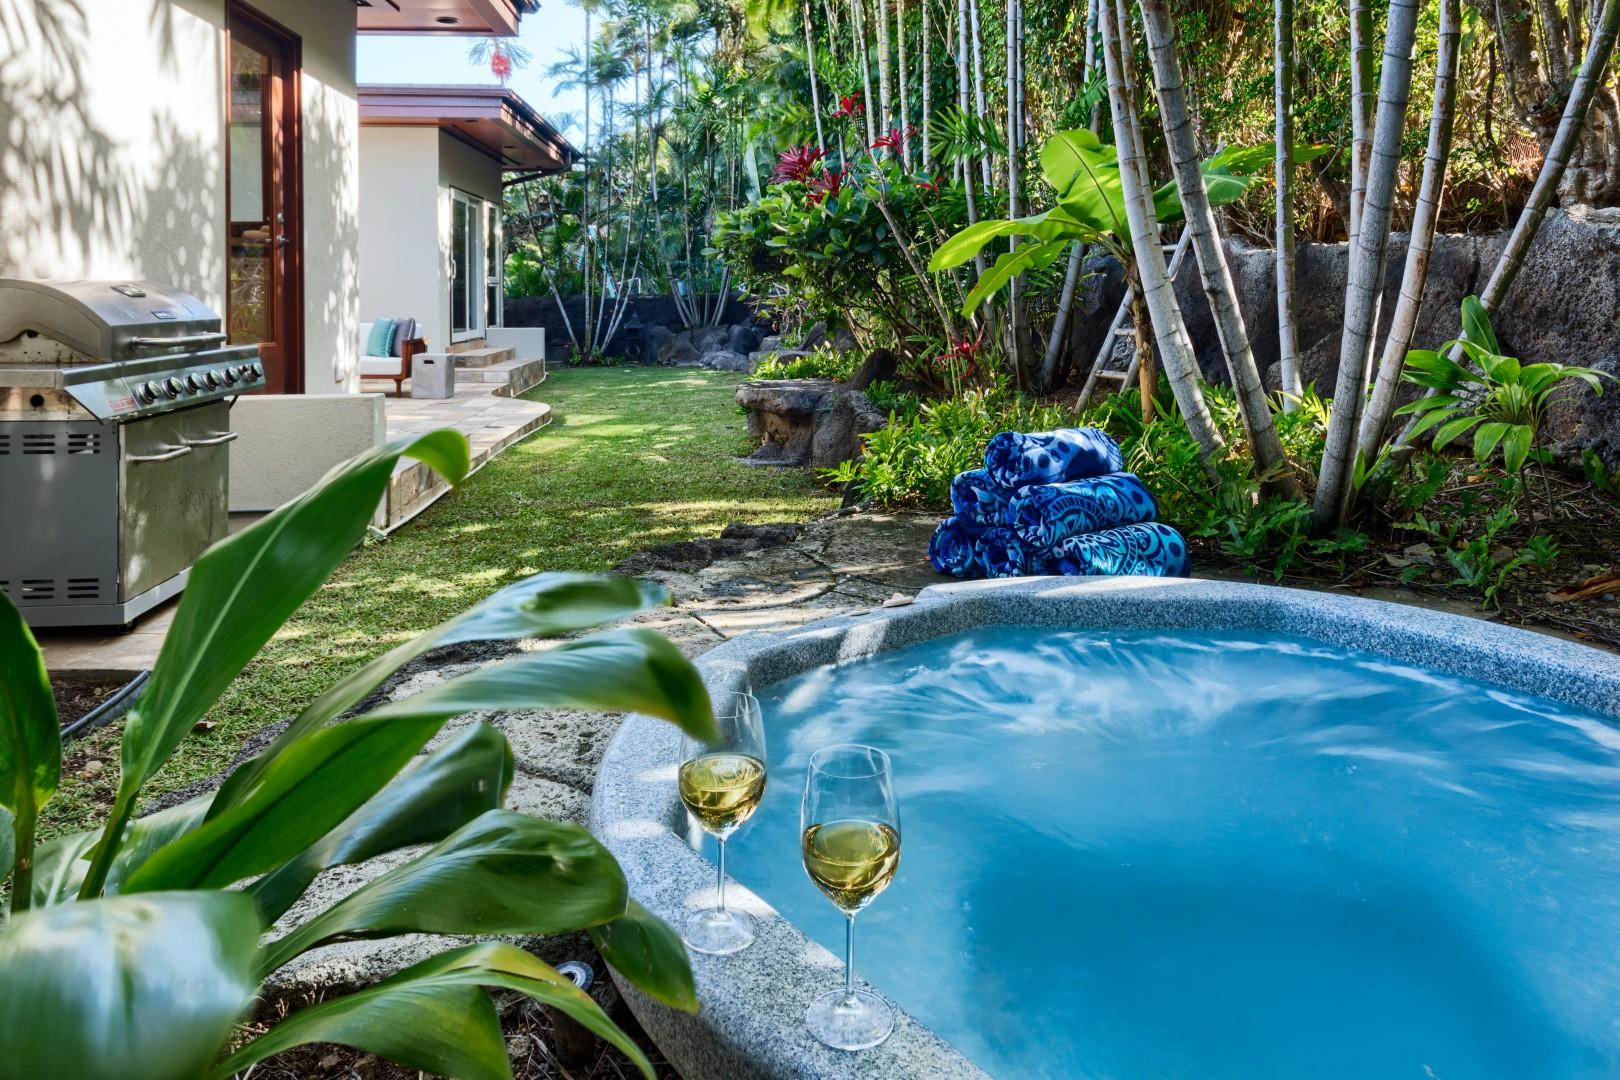 Relax in your private jacuzzi with a nice glass of wine, then  jump in the ocean to cool off!